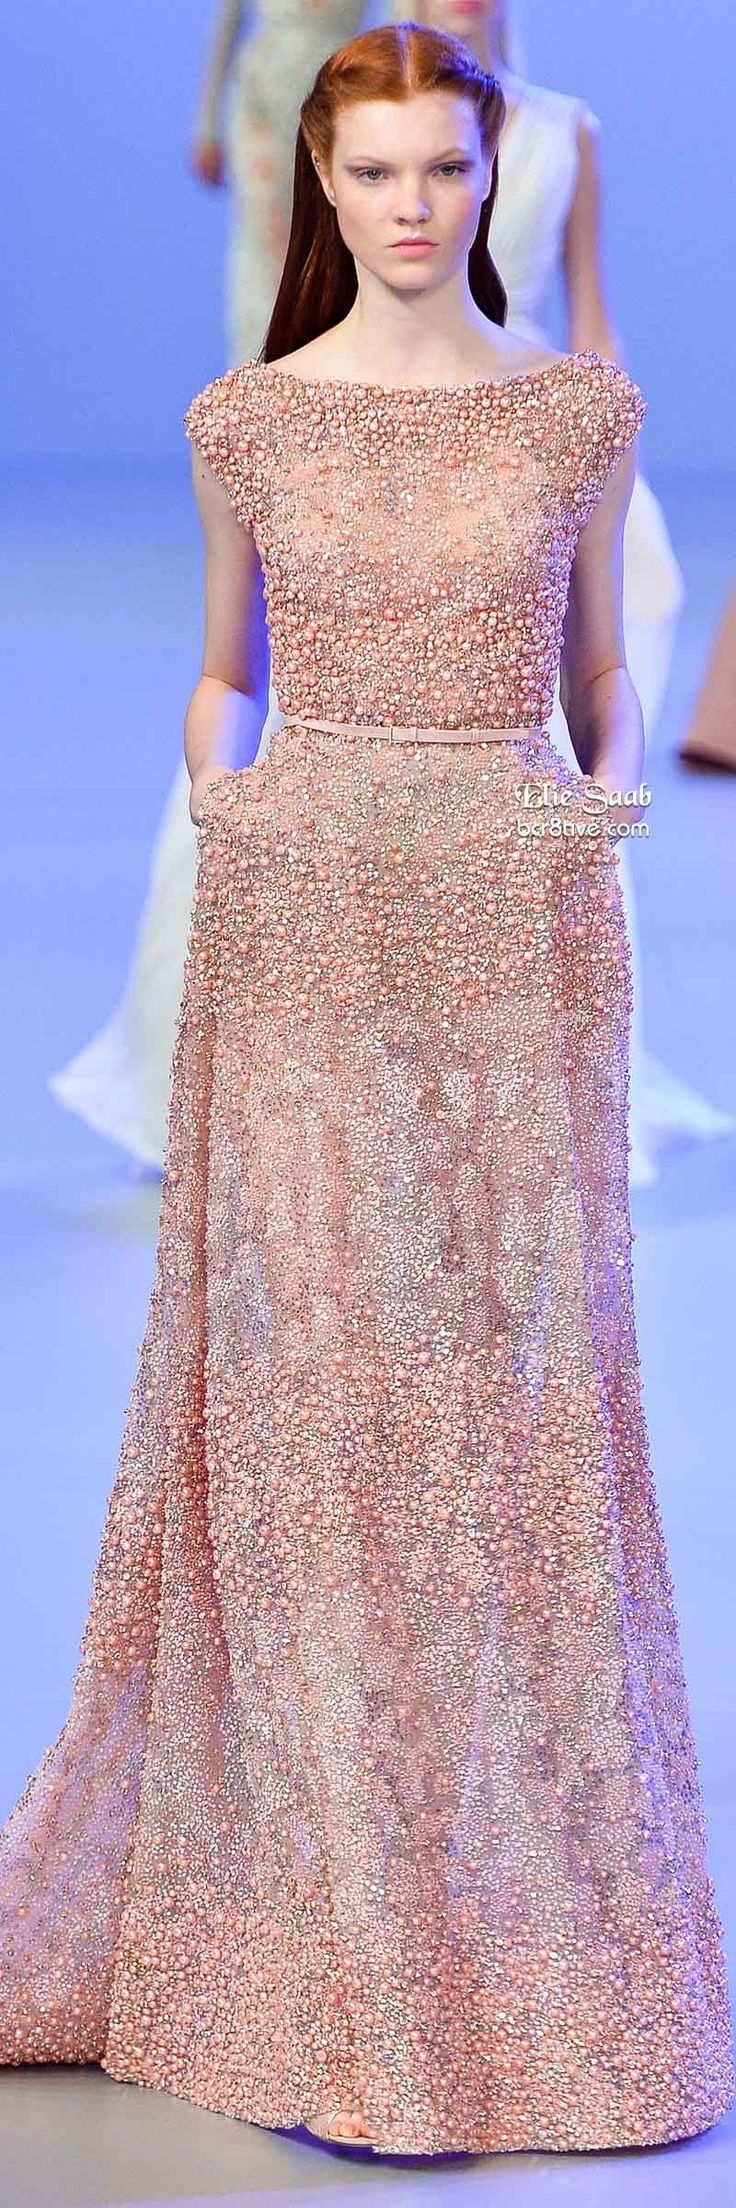 97 best Fexta images on Pinterest | Gown dress, Party outfits and ...